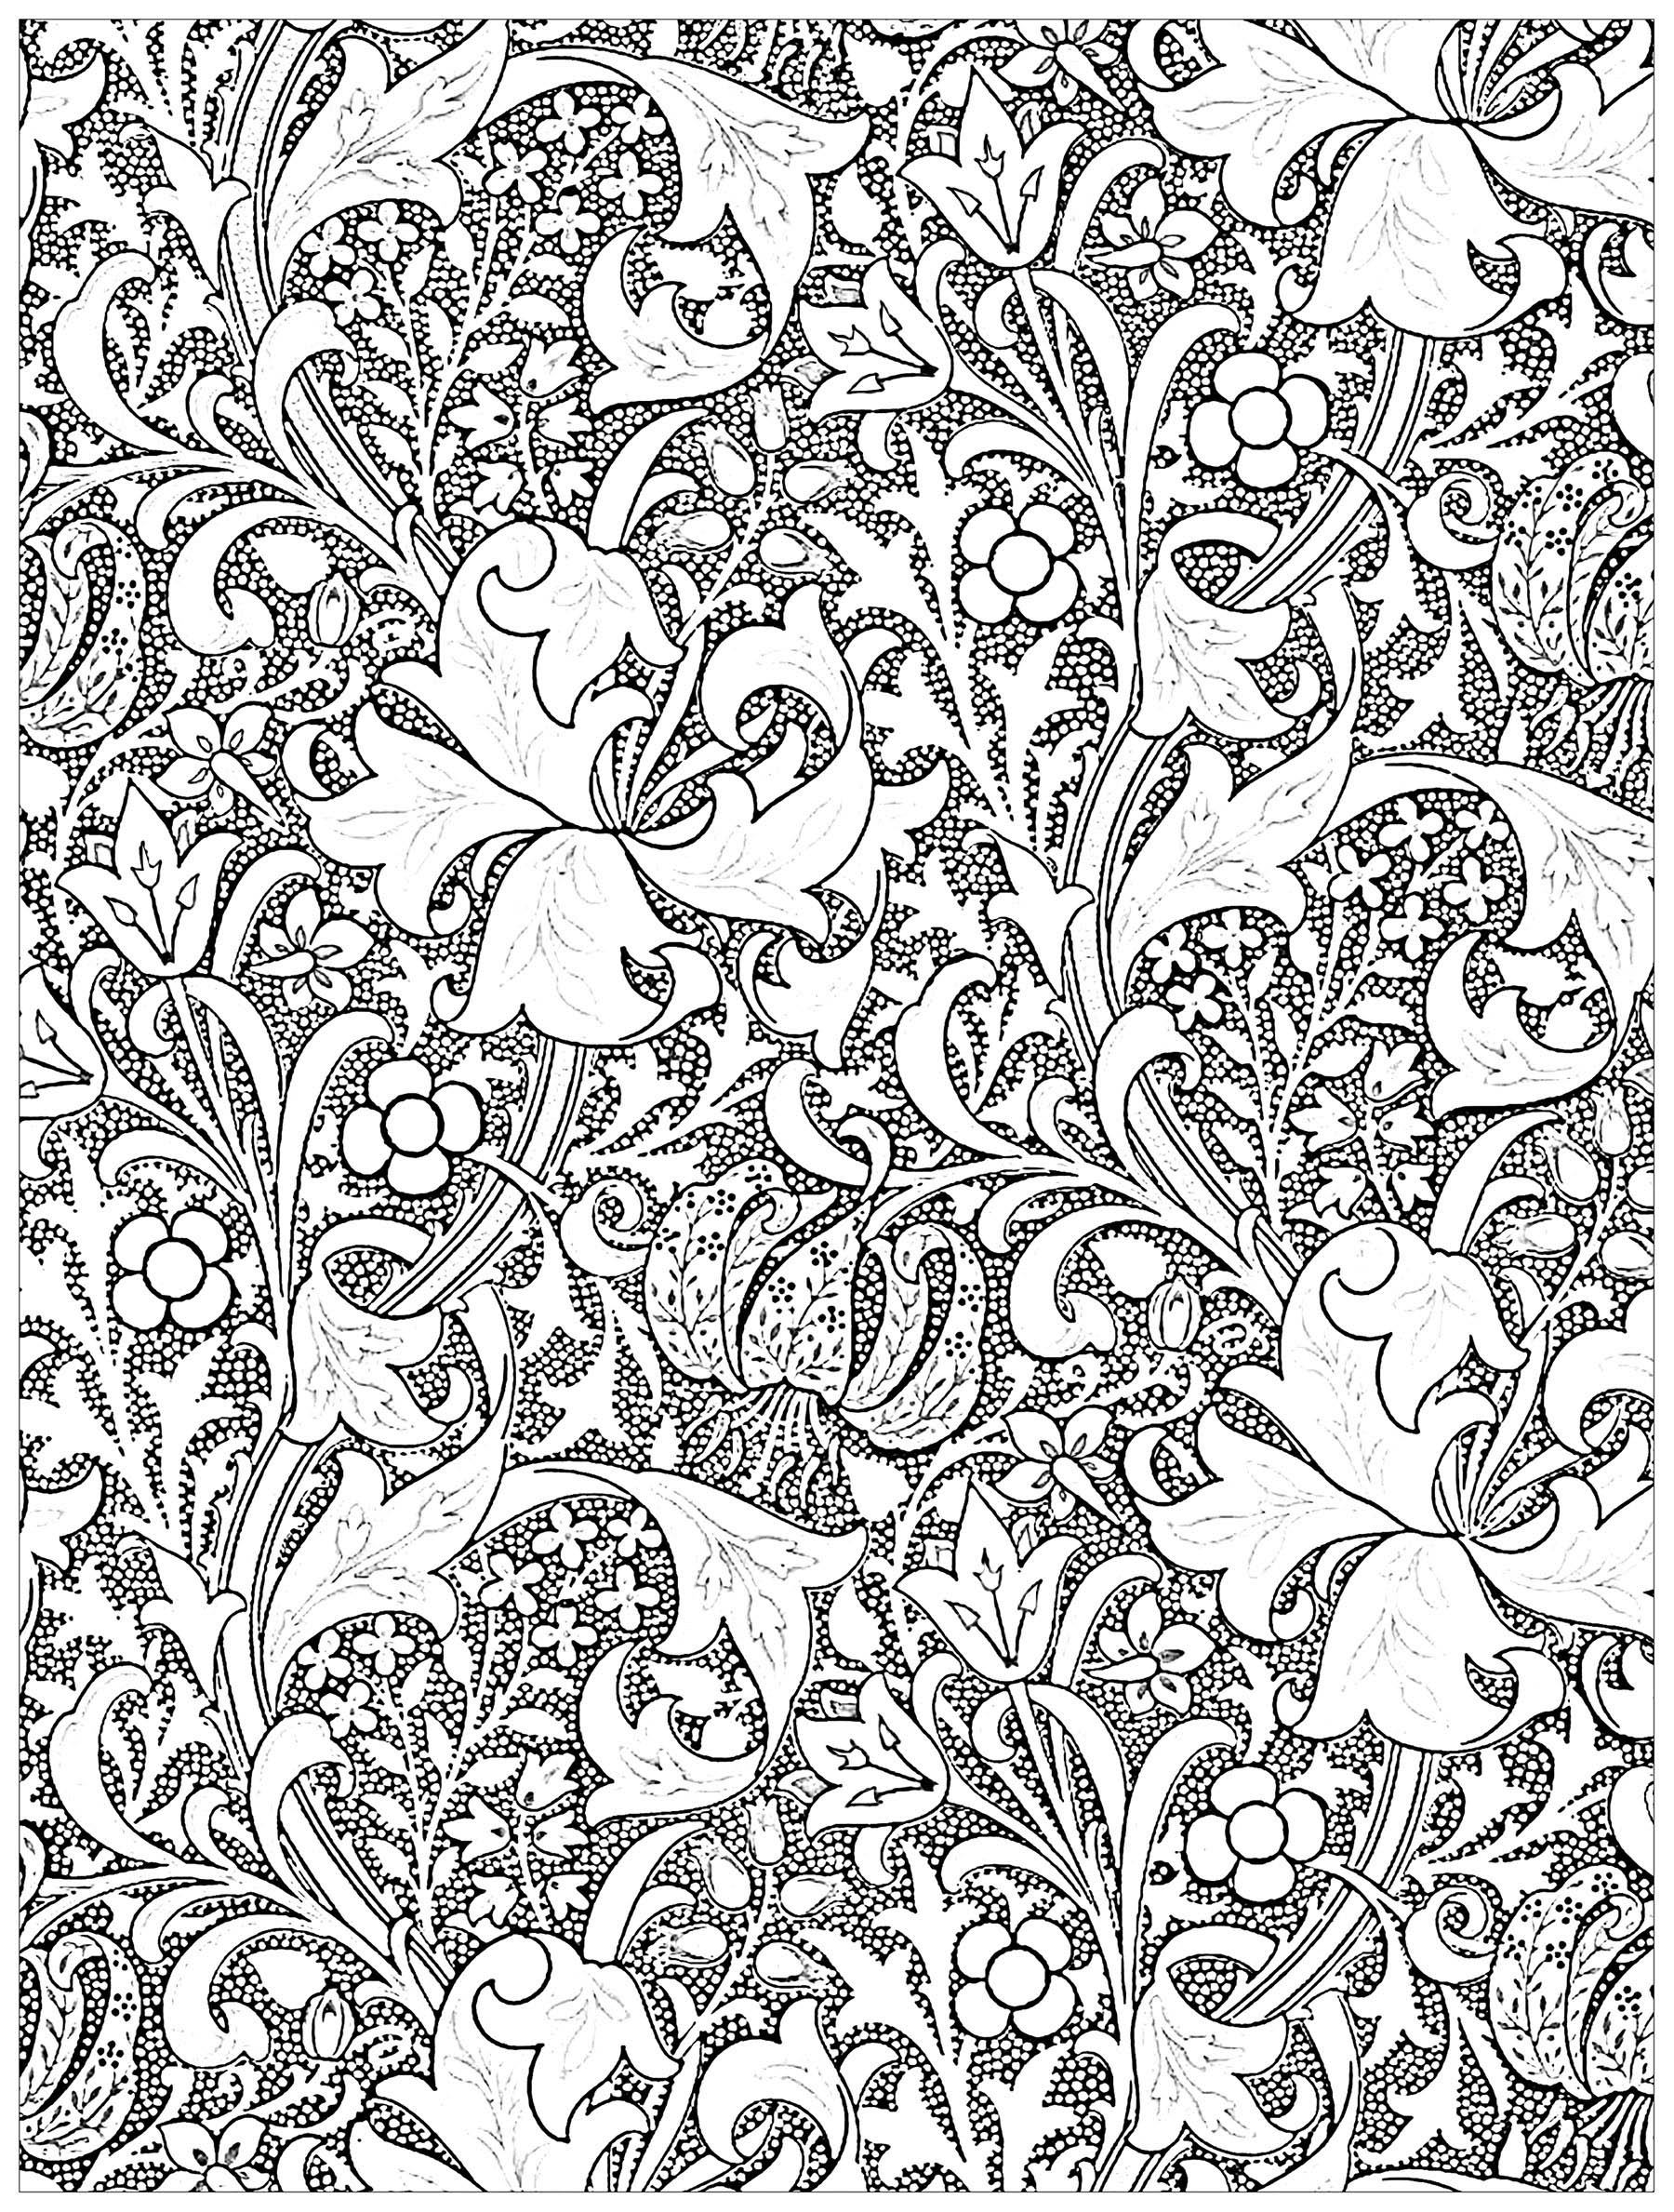 H coloring pages for adults - Exclusive Coloring Page Created From Textile Design Golden Lily By John Henry Dearle